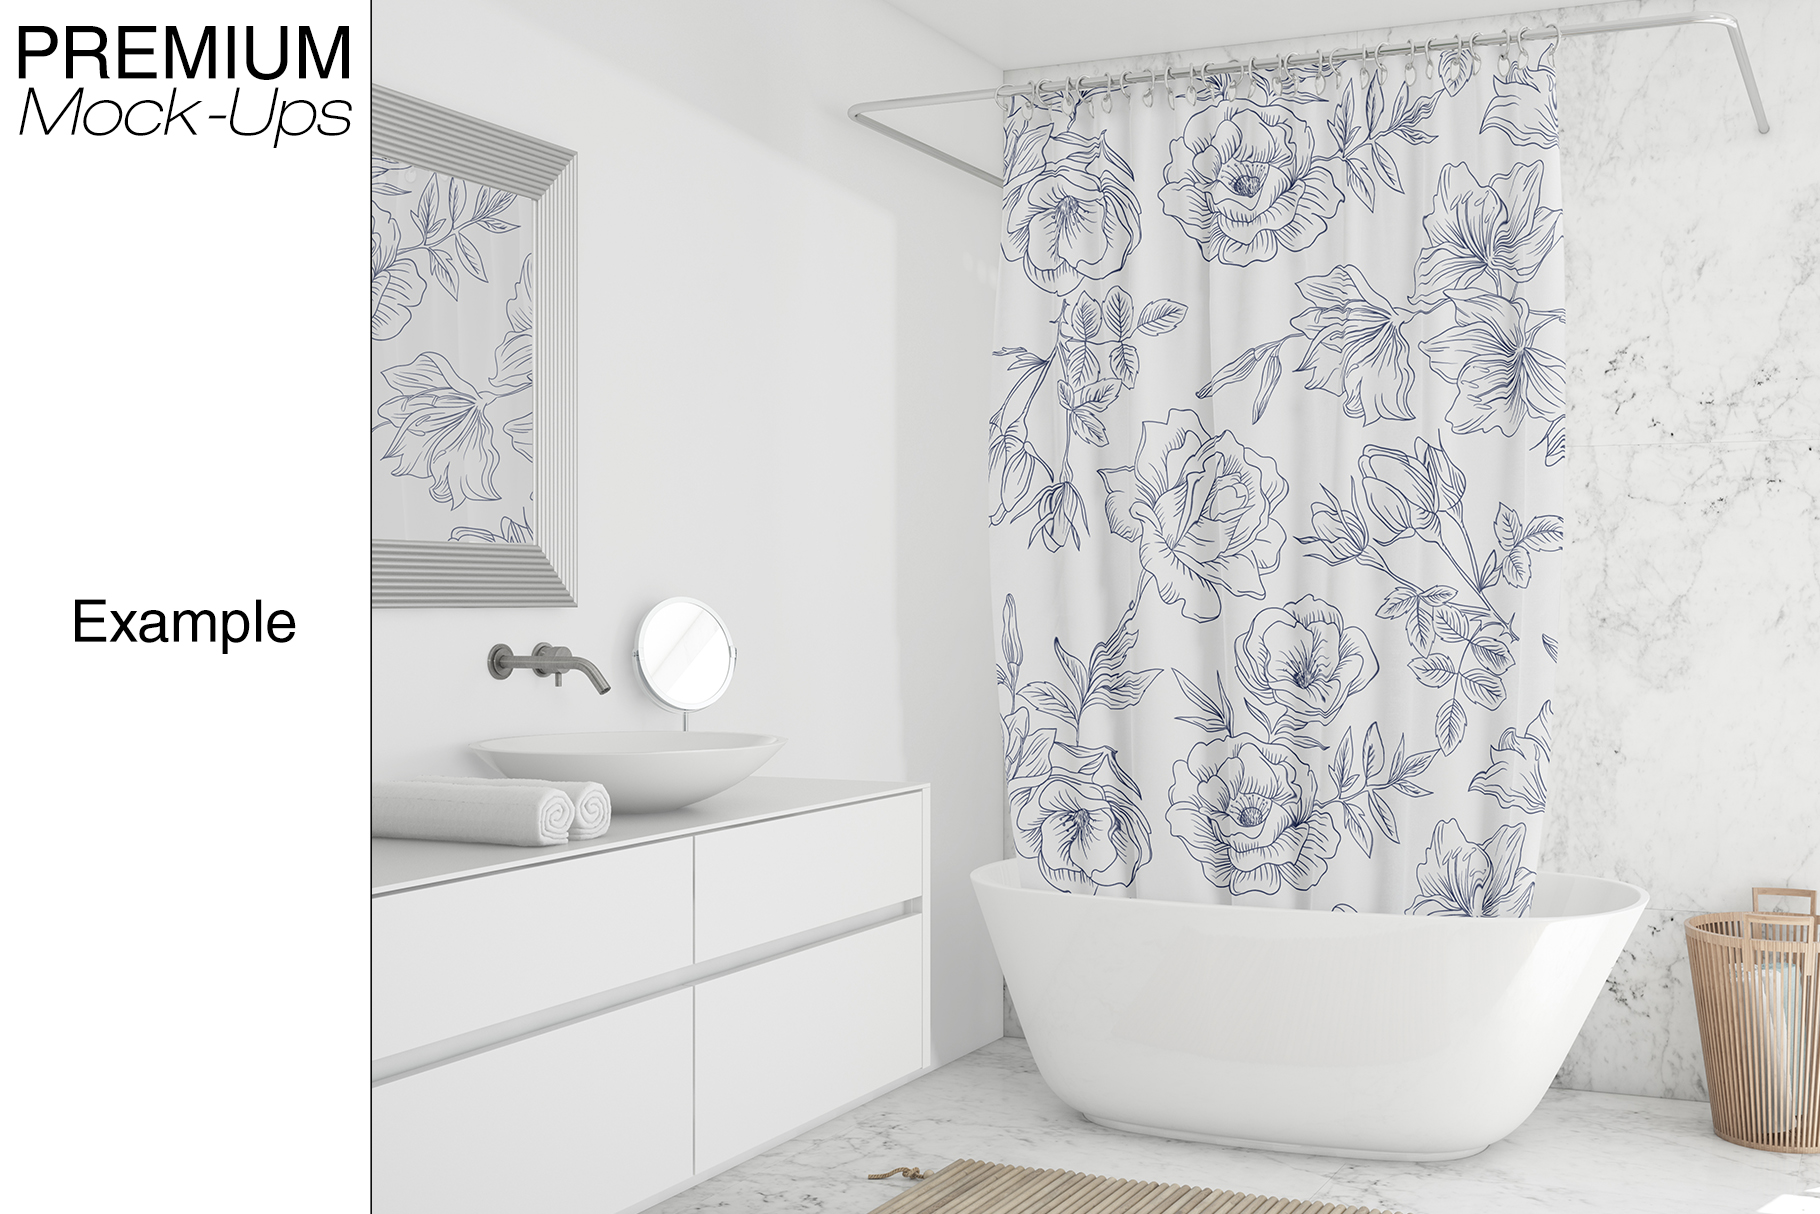 Shower Curtain Mockup Pack example image 4